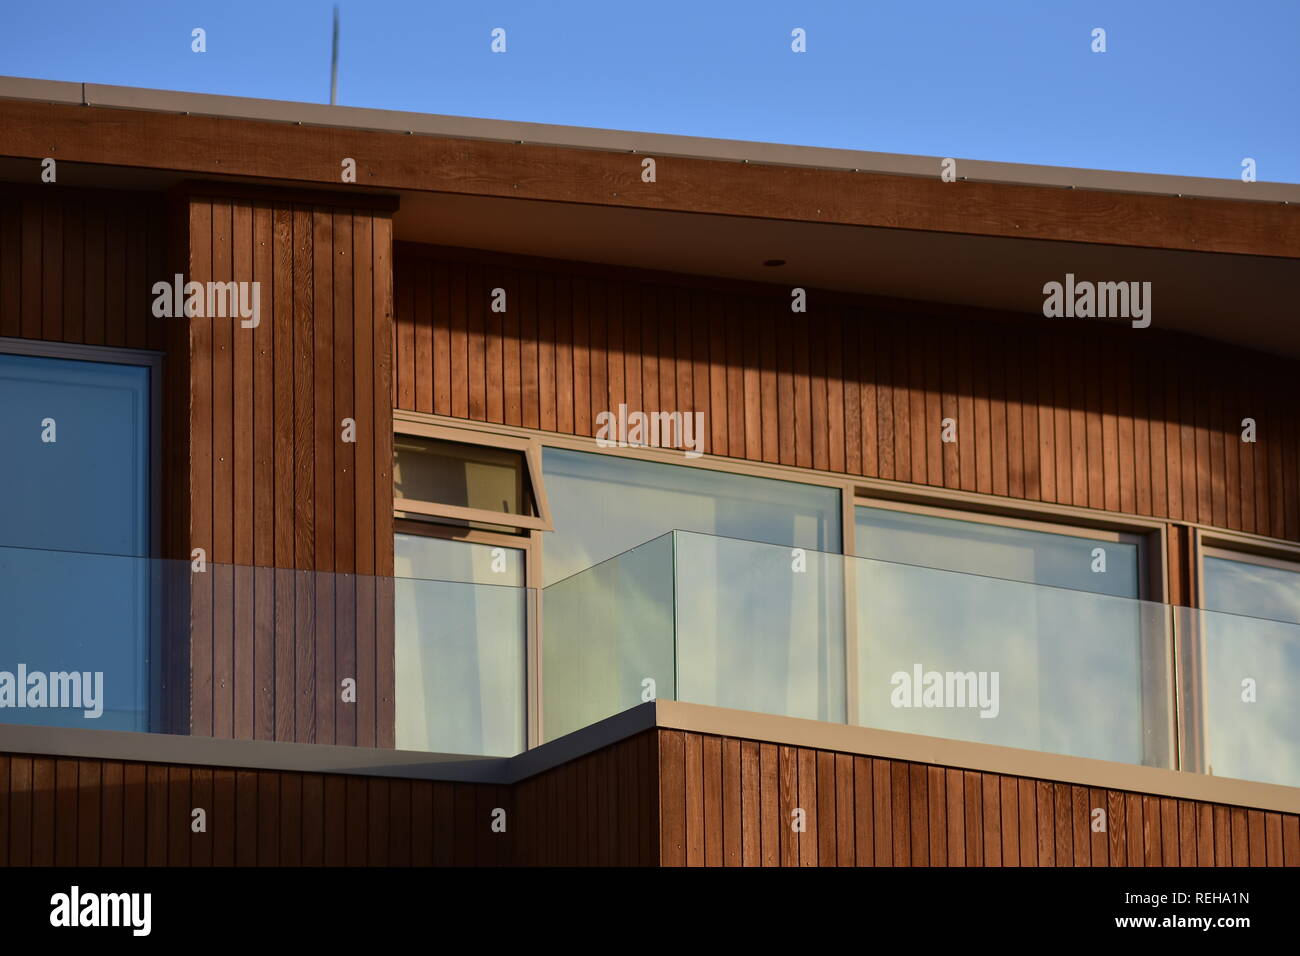 Facade with windows and veranda of modern wooden house with vertical varnished cladding and glass transparent railing. Stock Photo